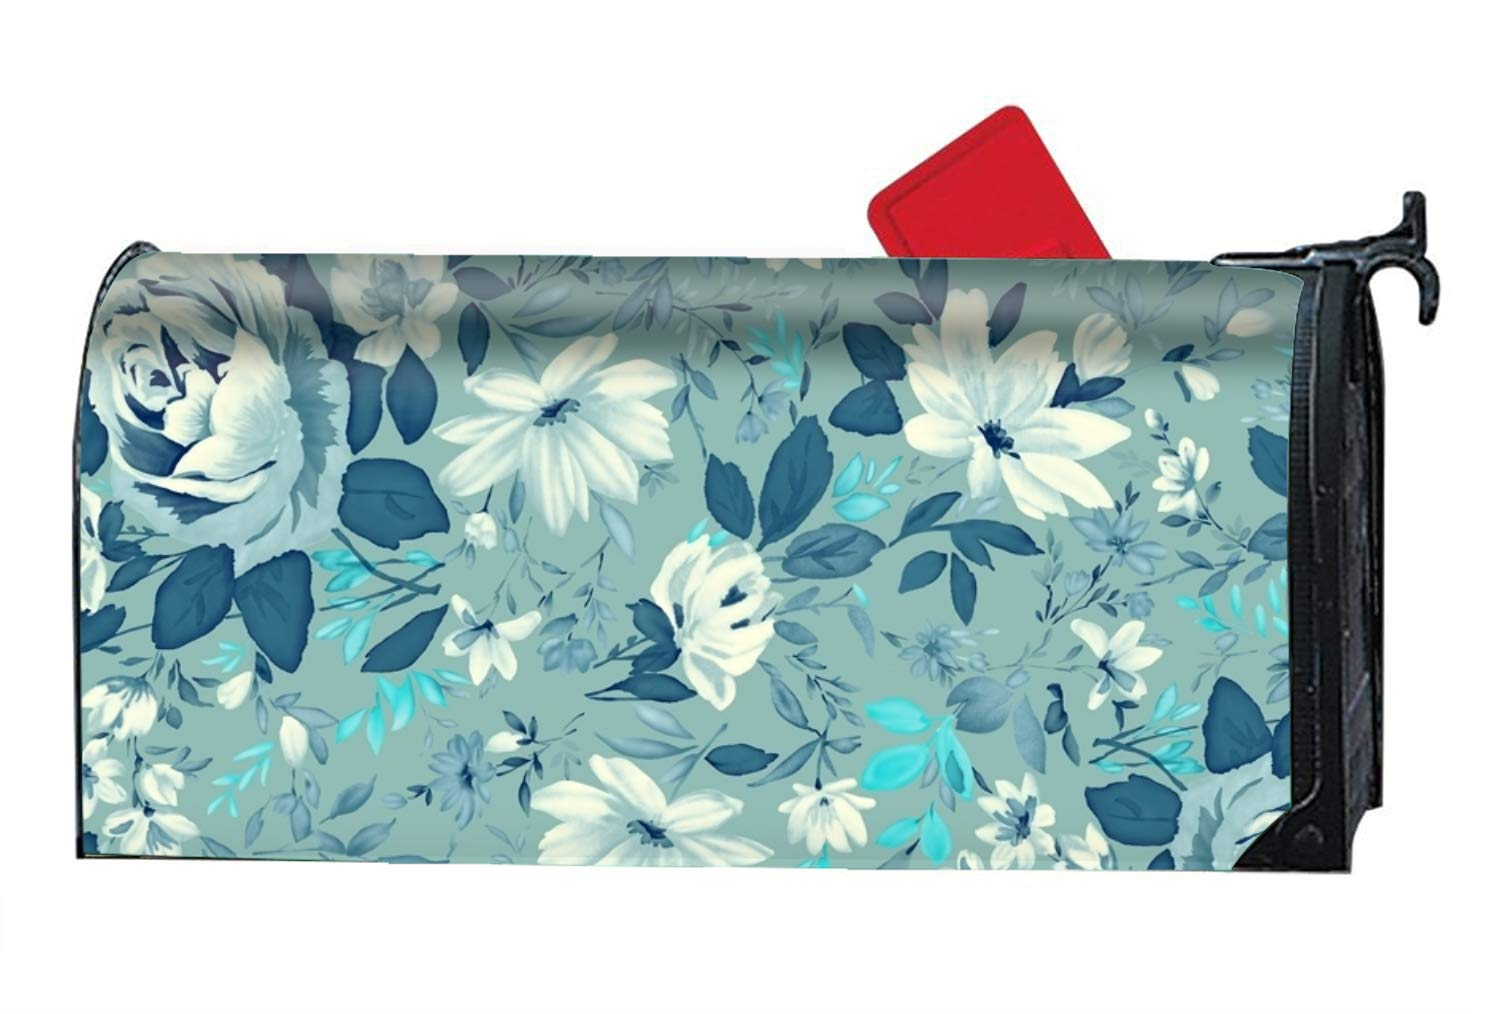 Summer Flower Magnetic Mailbox Cover - 9 x 21 Inches